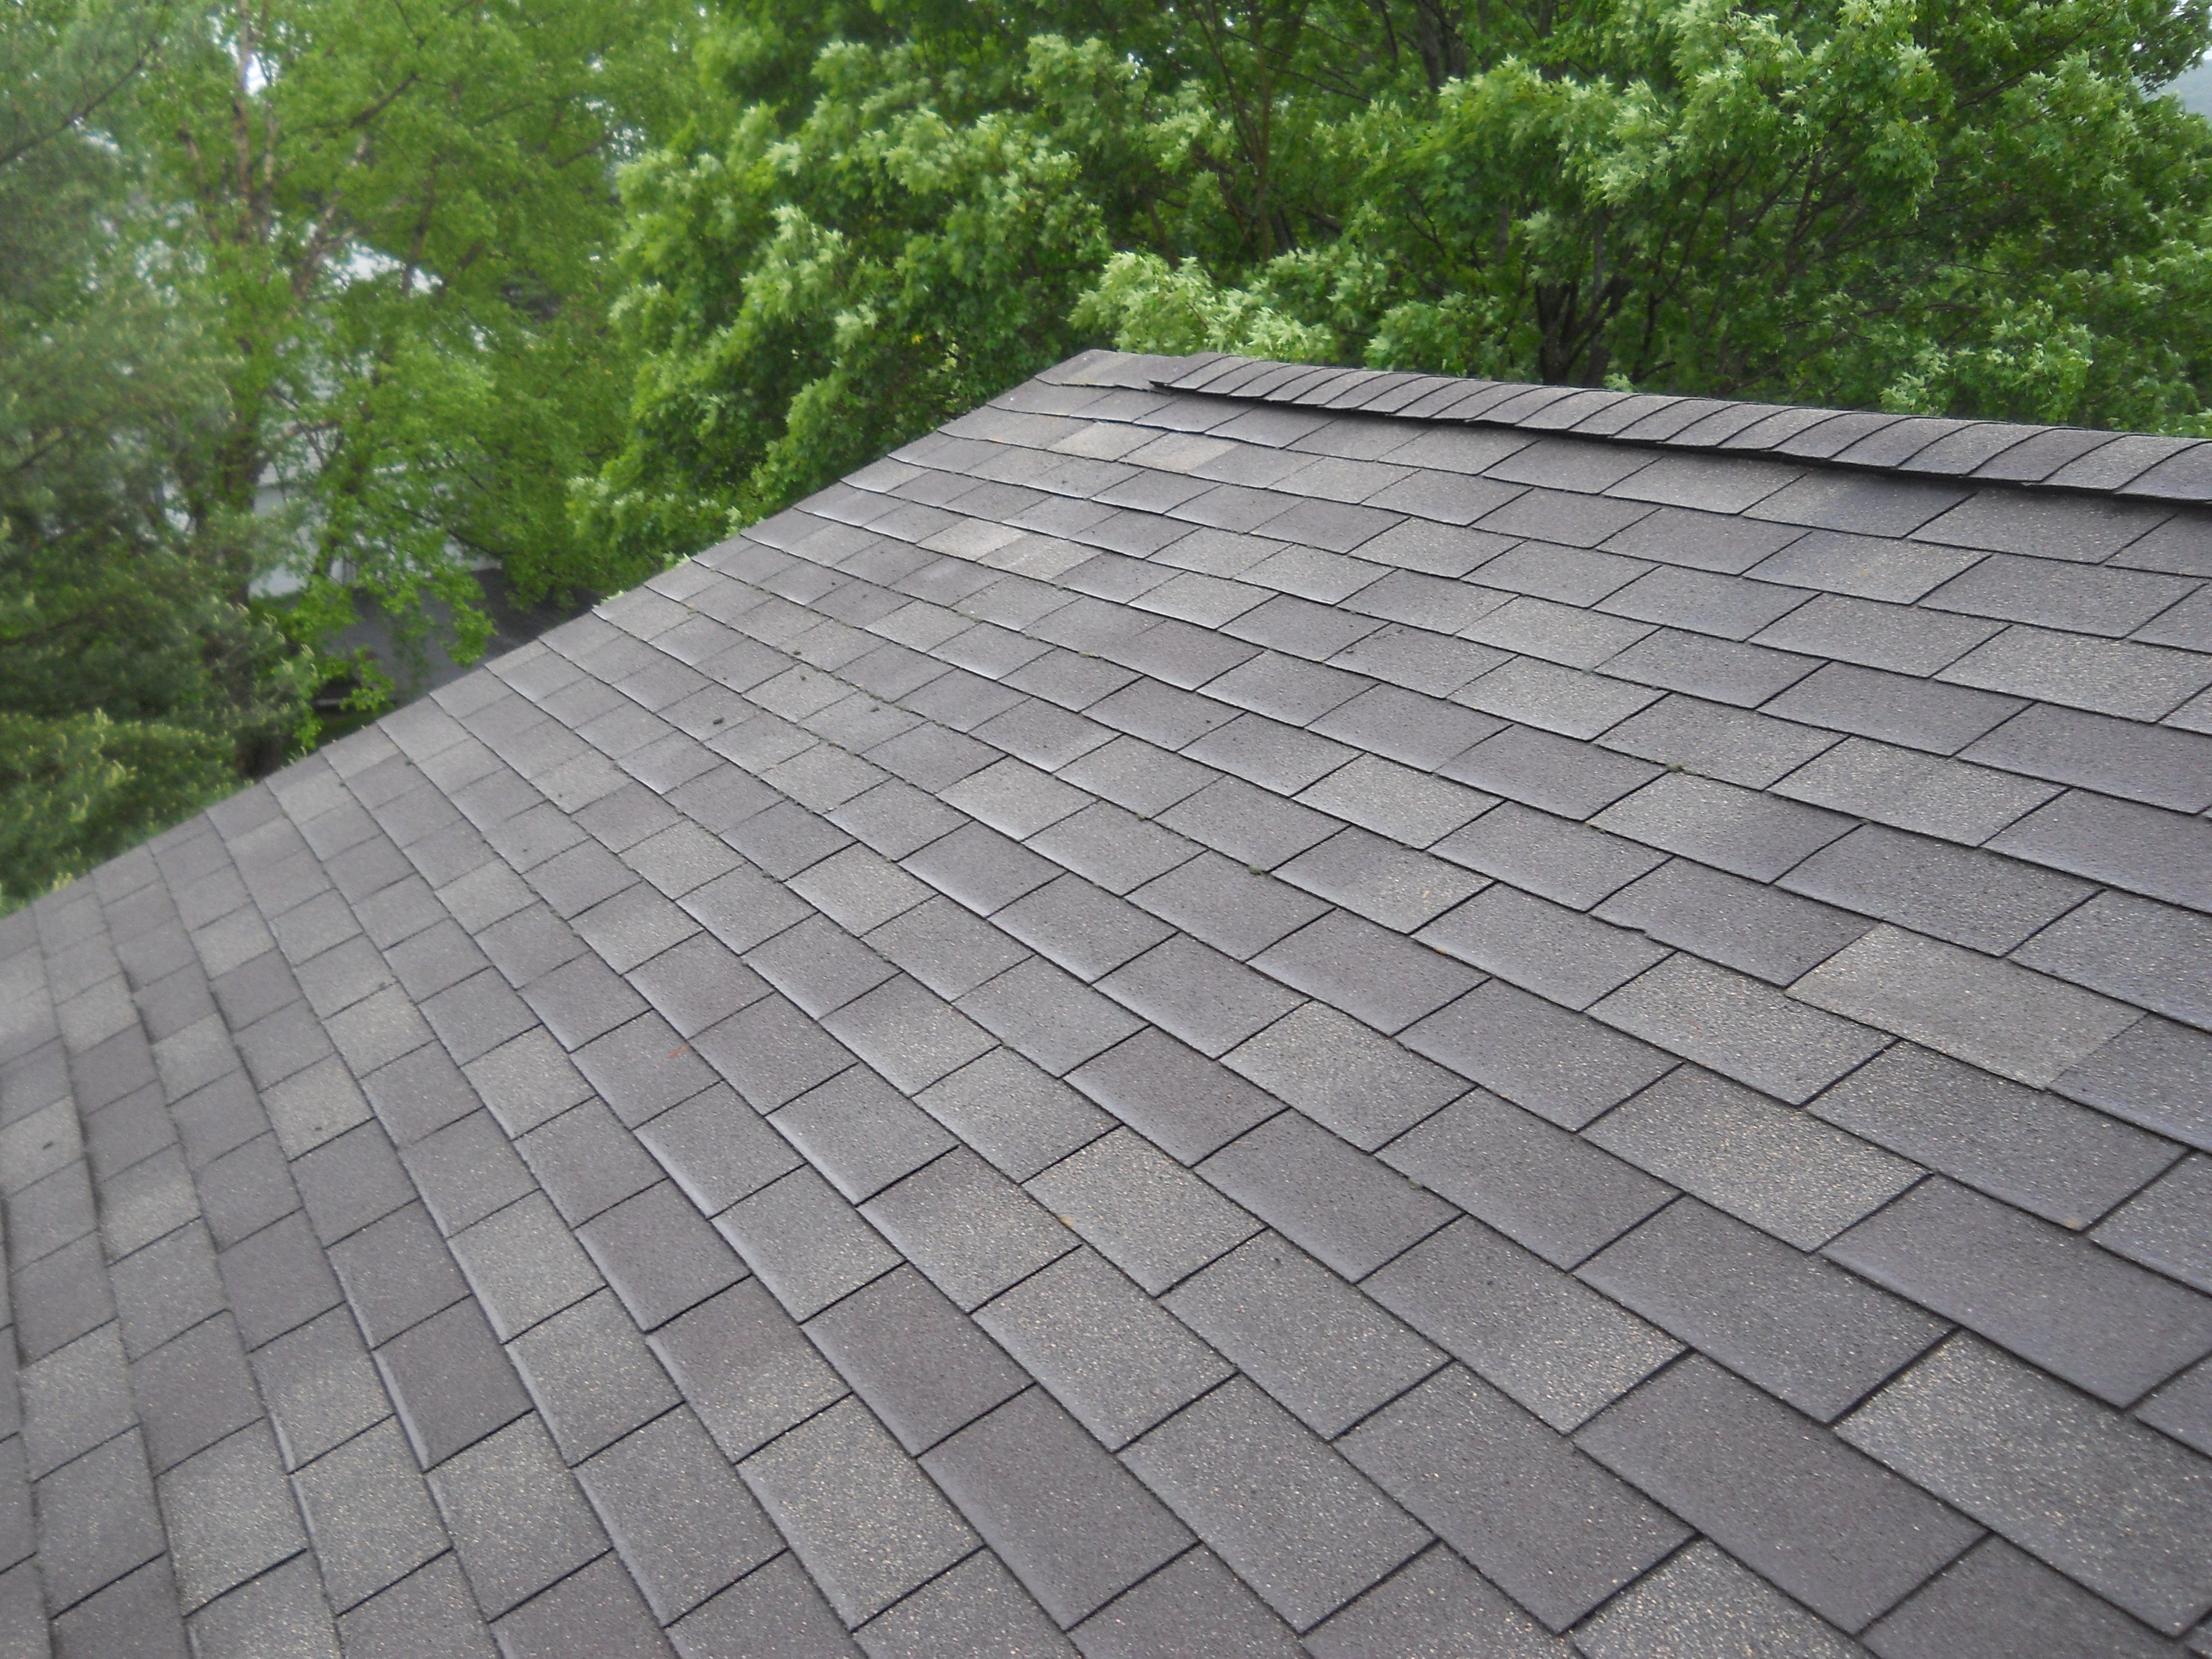 Best Gaf Royal Sovereign 3 Tab Shingles Shingle Roofing 400 x 300